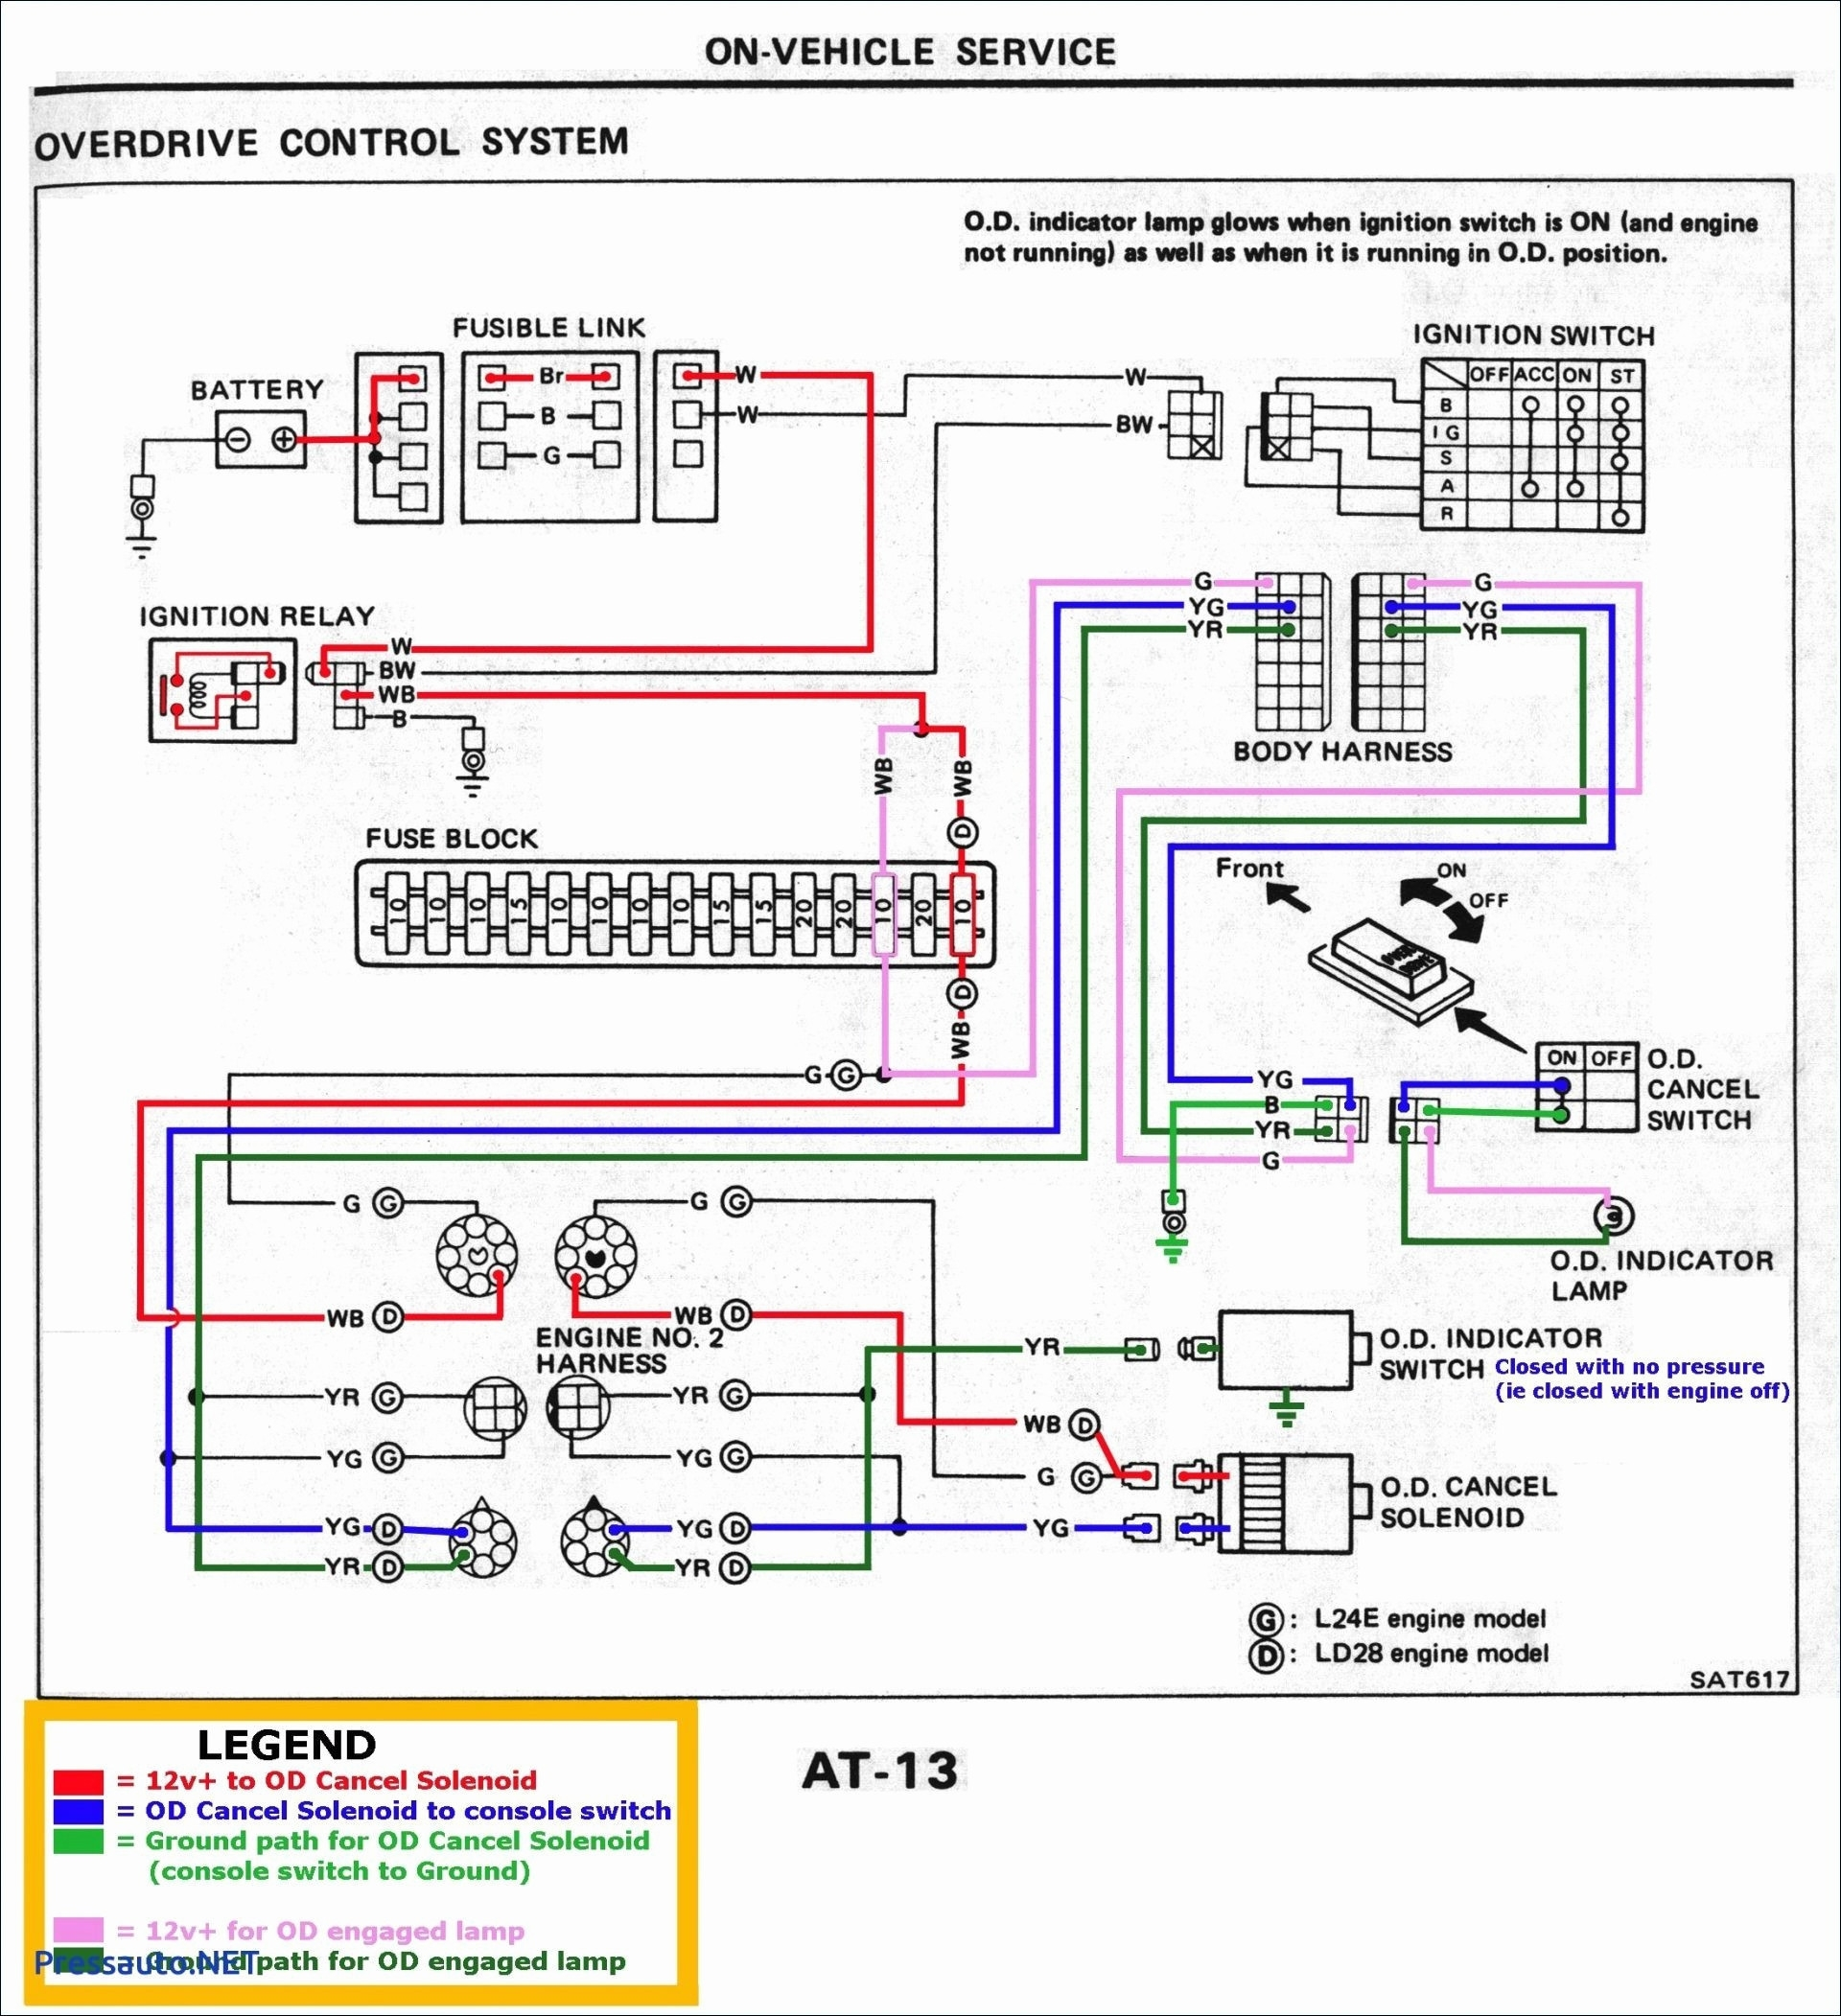 altronix rb5 wiring diagram Collection-rb5 relay wiring diagram 8 pin relay diagram freightliner tail rh 919ez info RB5 Relay Wiring Bosch D7412G Pioneer AVH P2300DVD Wiring Diagram 9-d